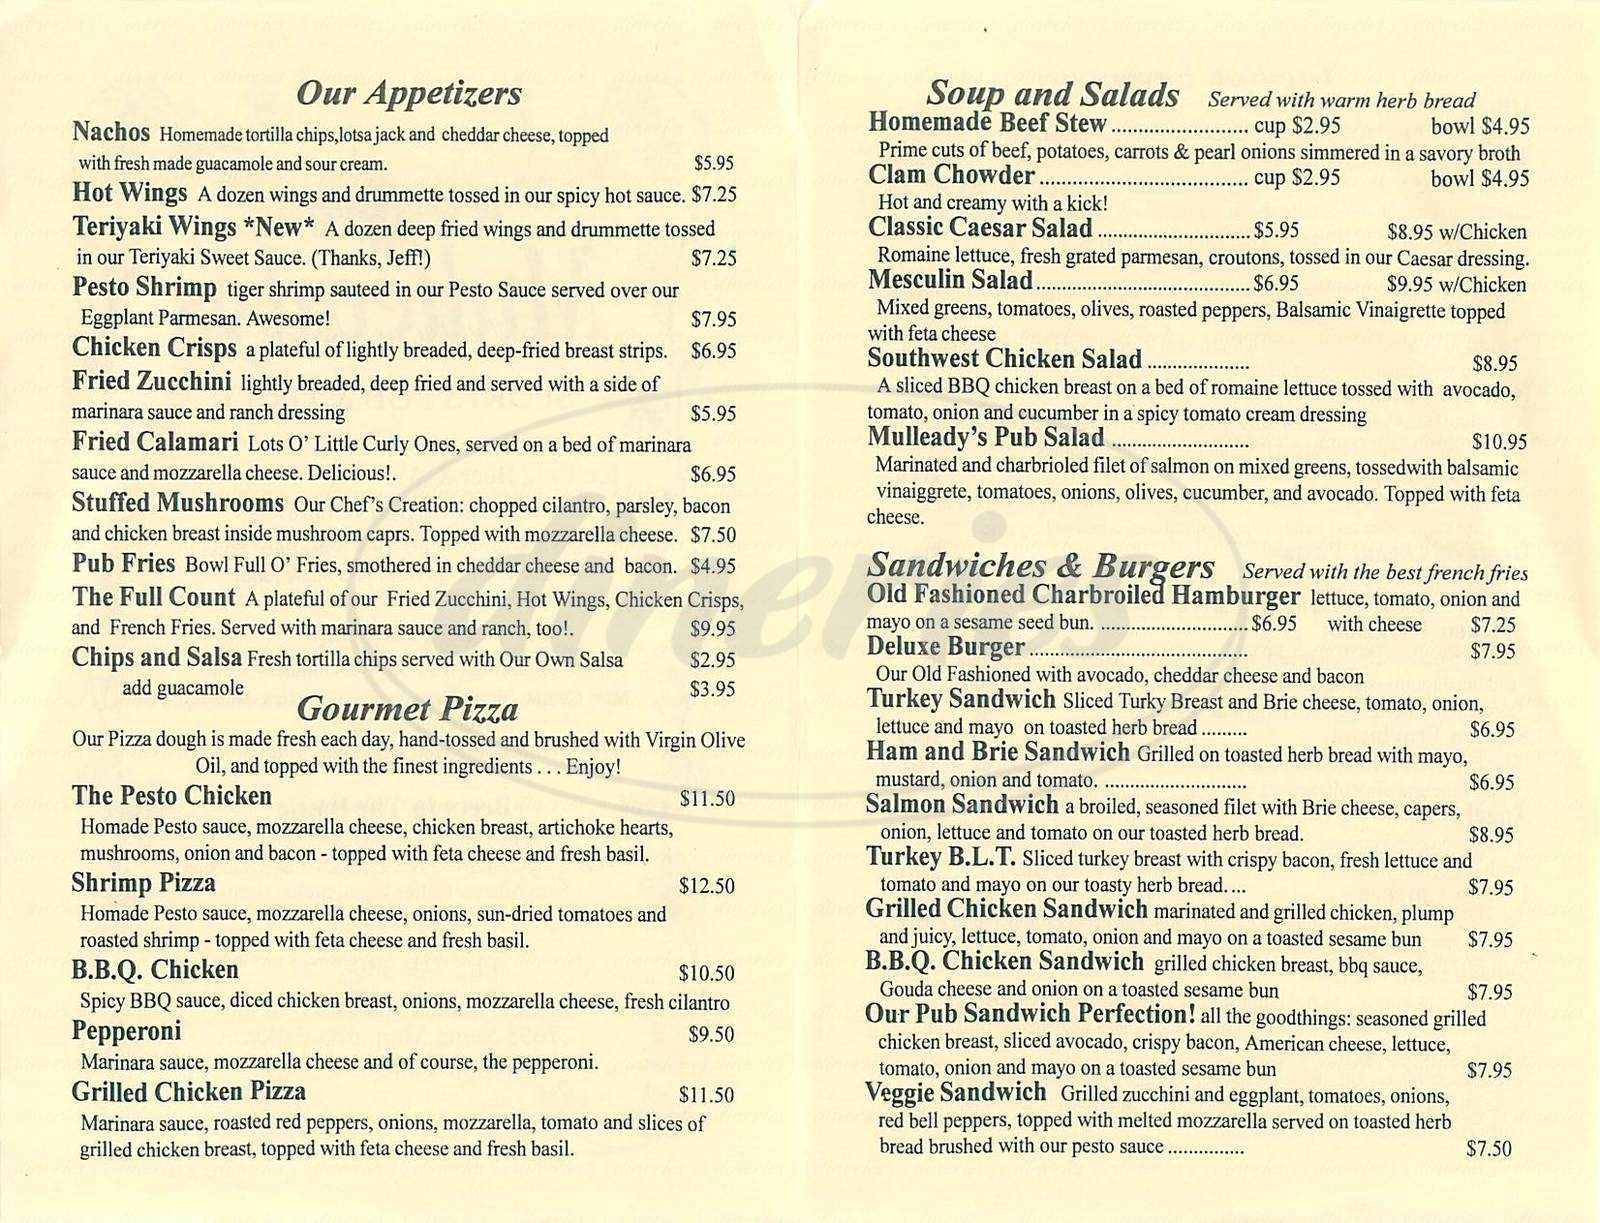 menu for Mulleady's Sports Pub & Grill